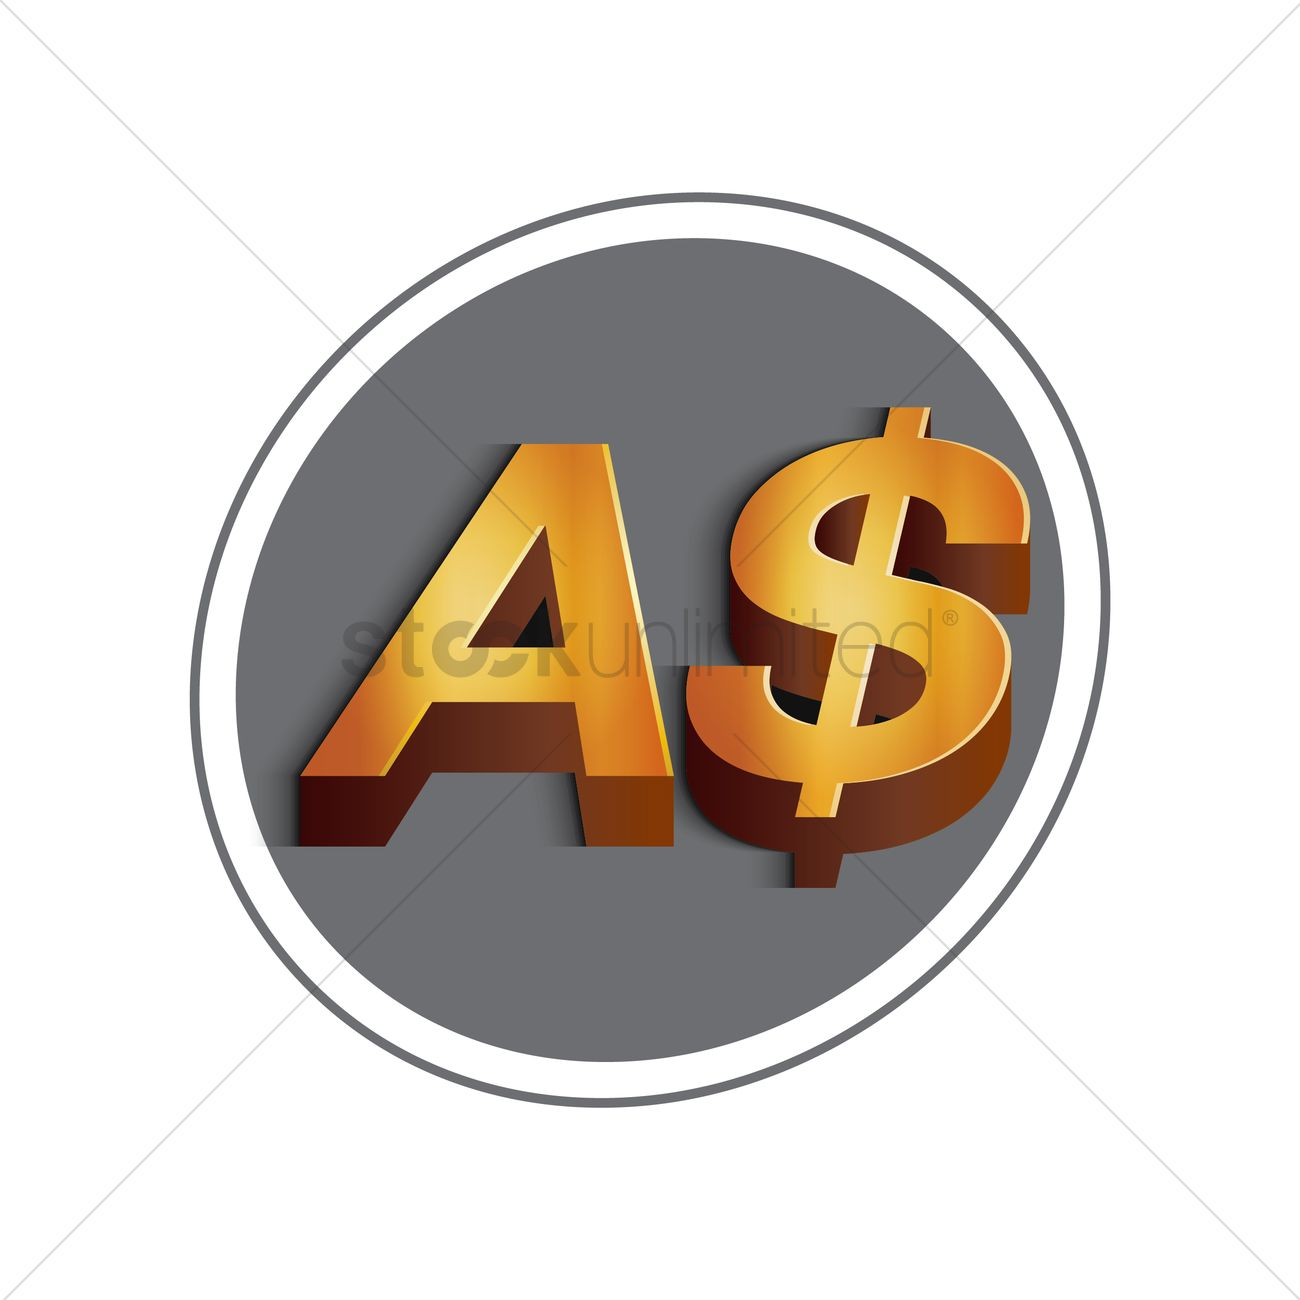 Australian dollar currency symbol vector image 1611894 australian dollar currency symbol vector graphic biocorpaavc Image collections